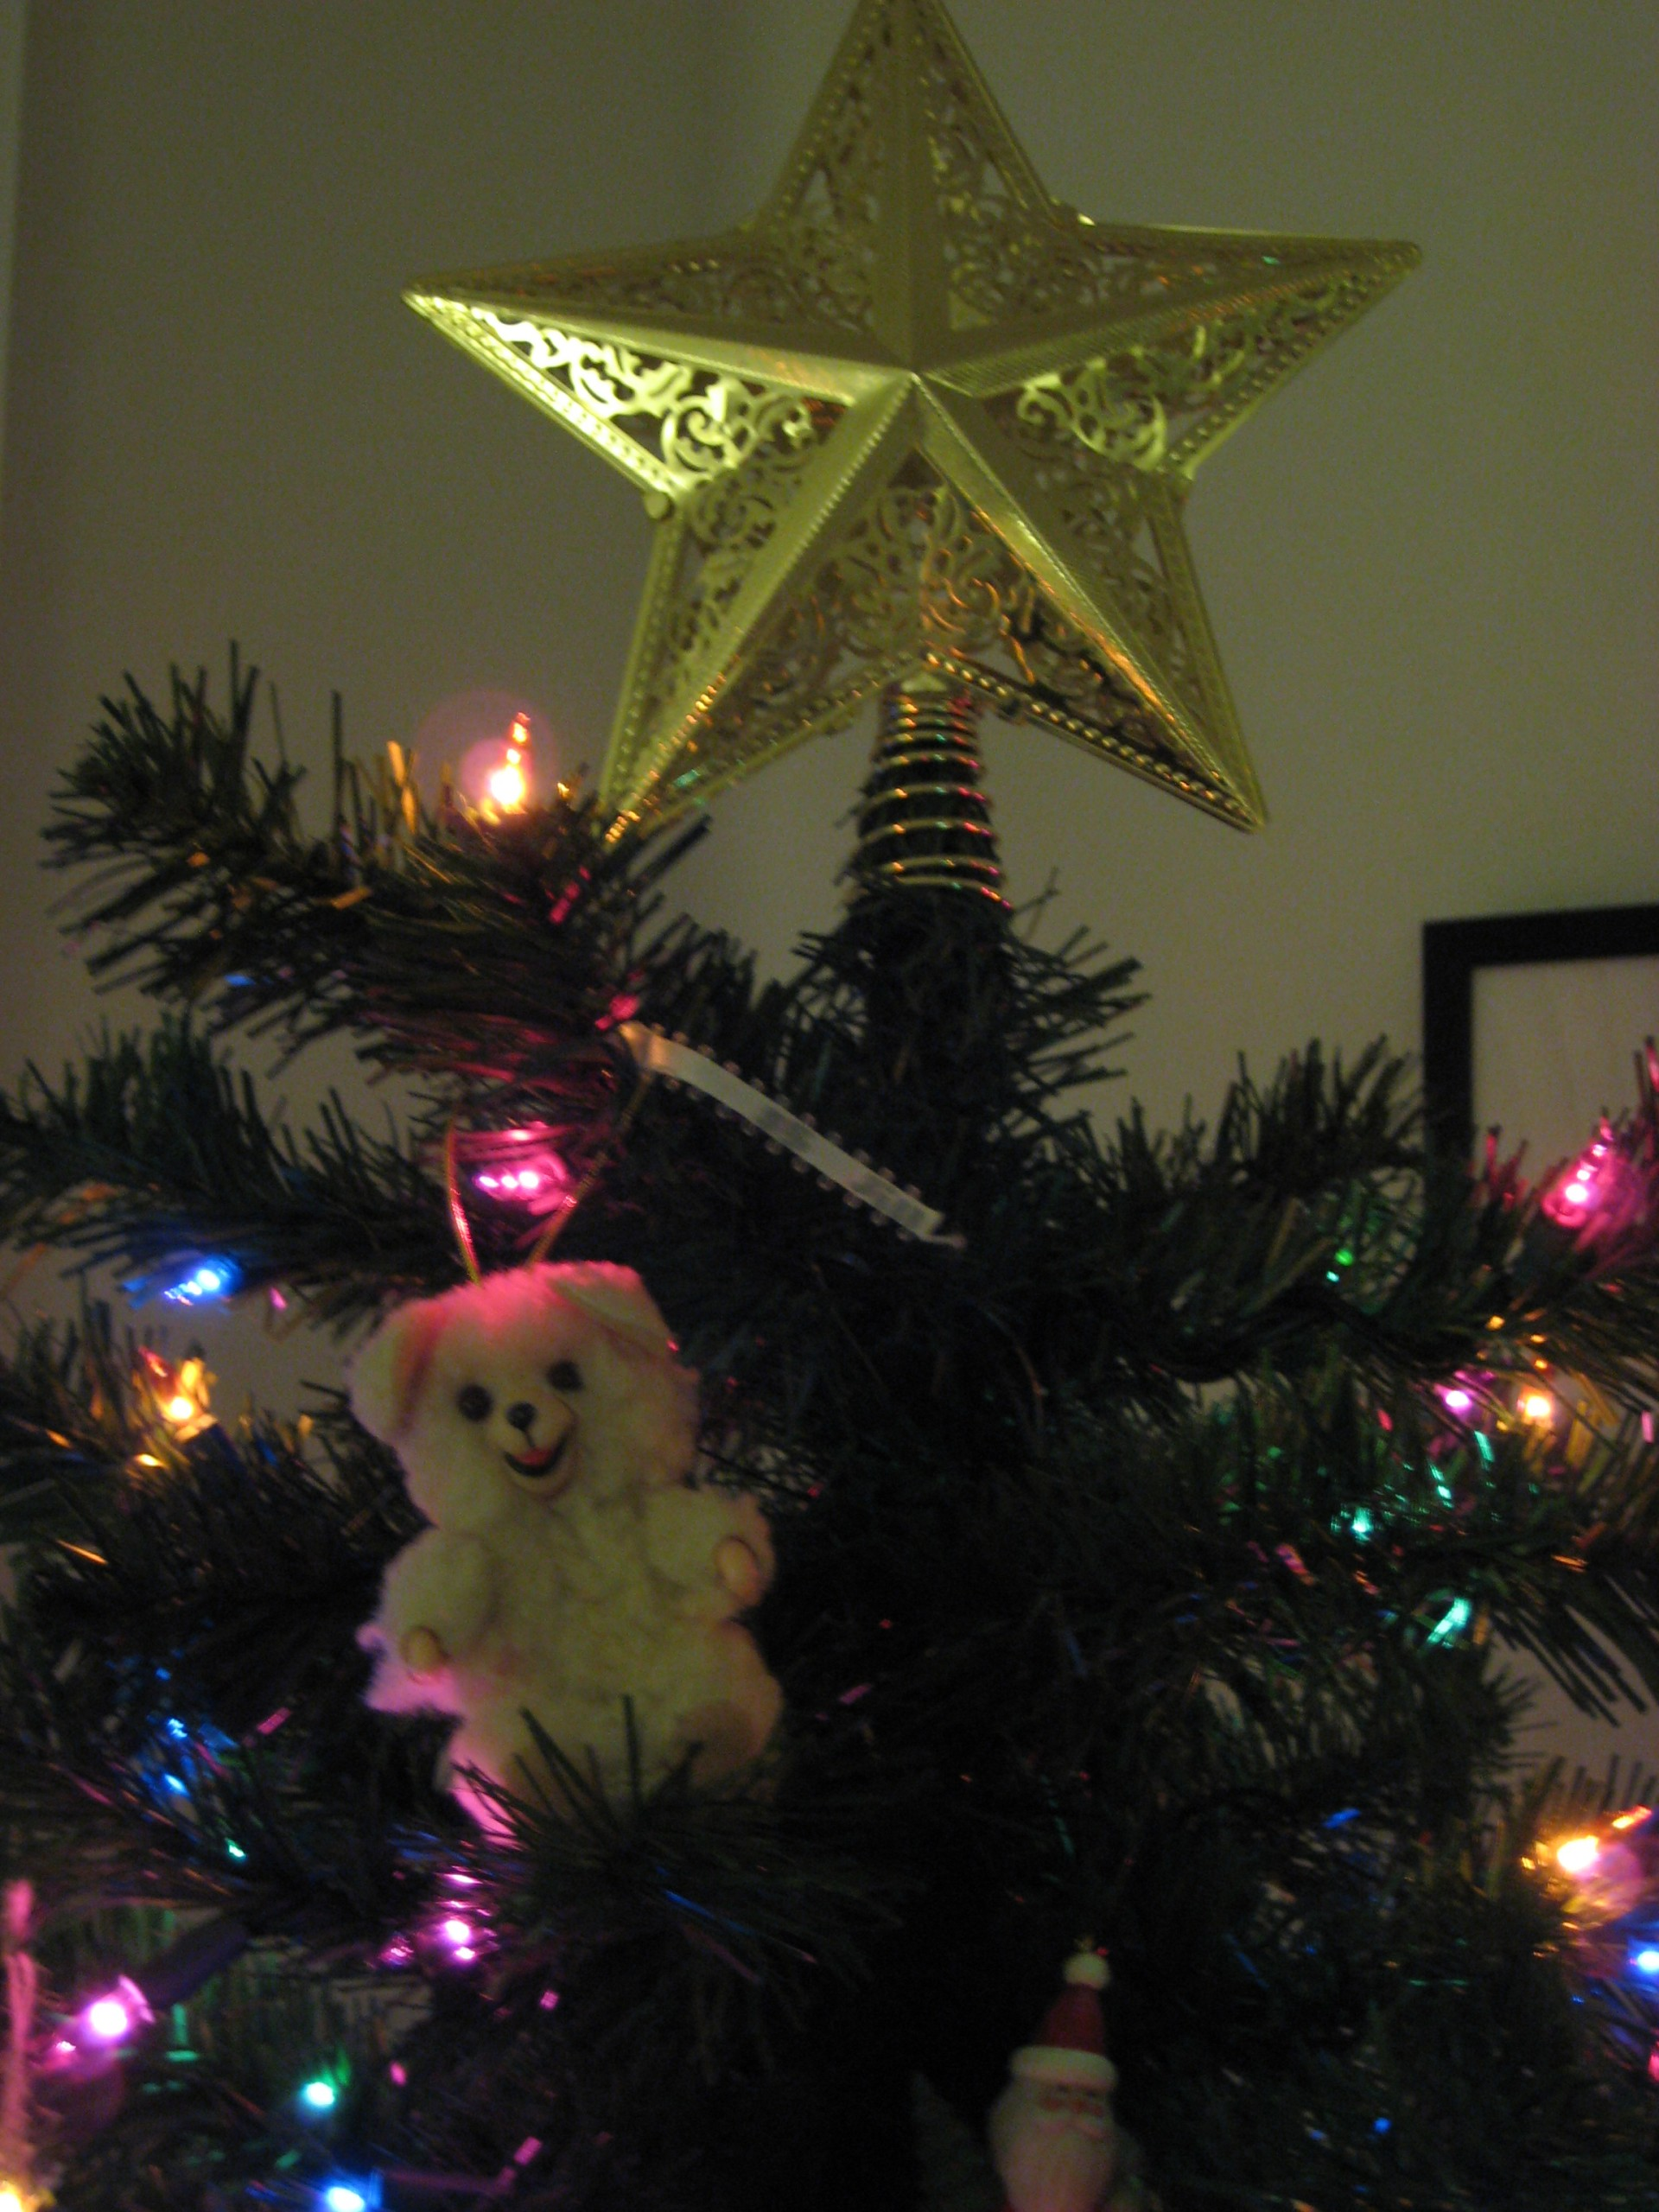 Snuggle Bear at the top of the tree, where he belongs